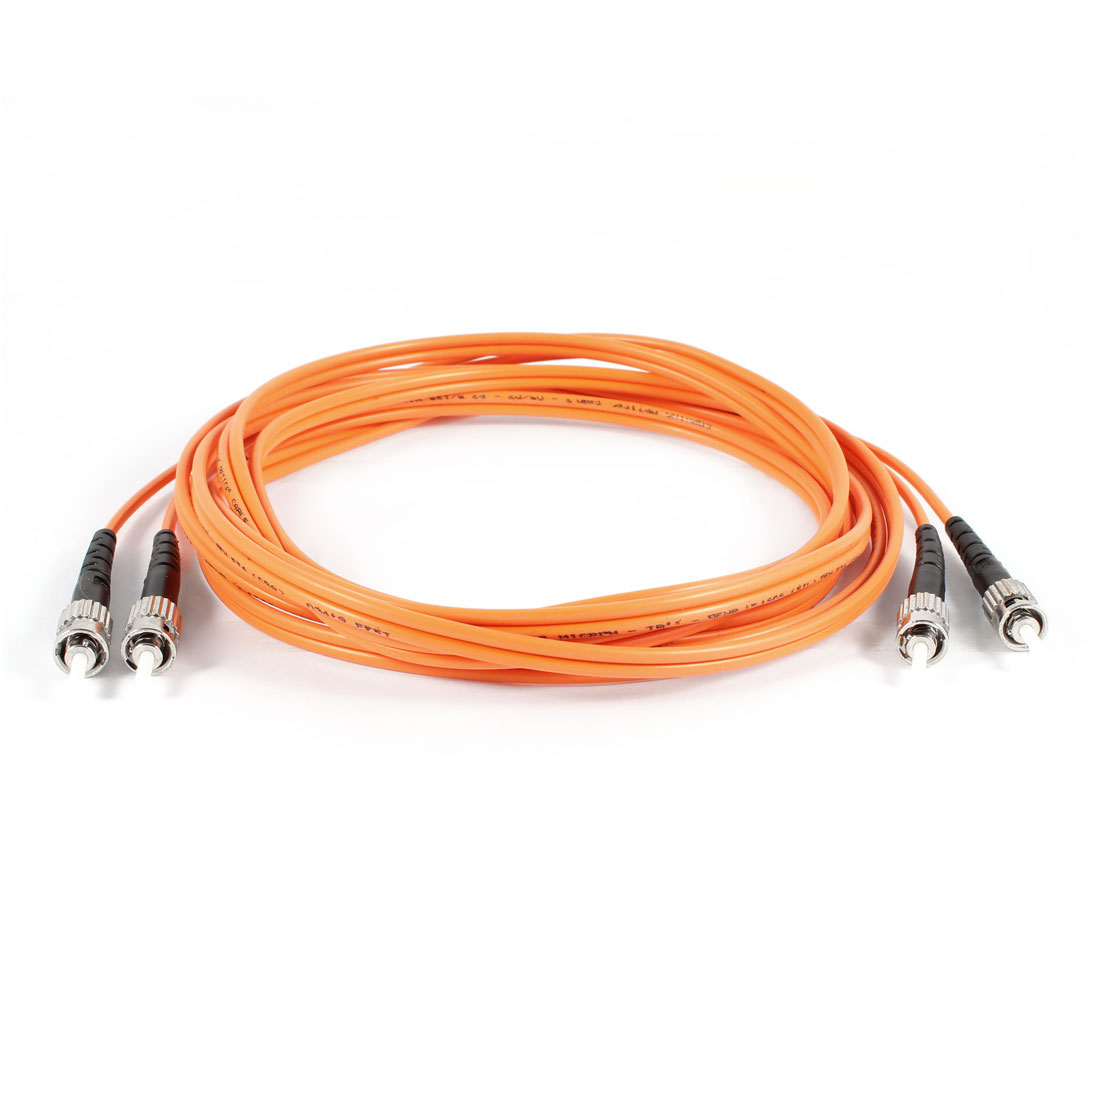 Double End ST Connector Single Mode Fiber Optic Cable Cord 3 Meters